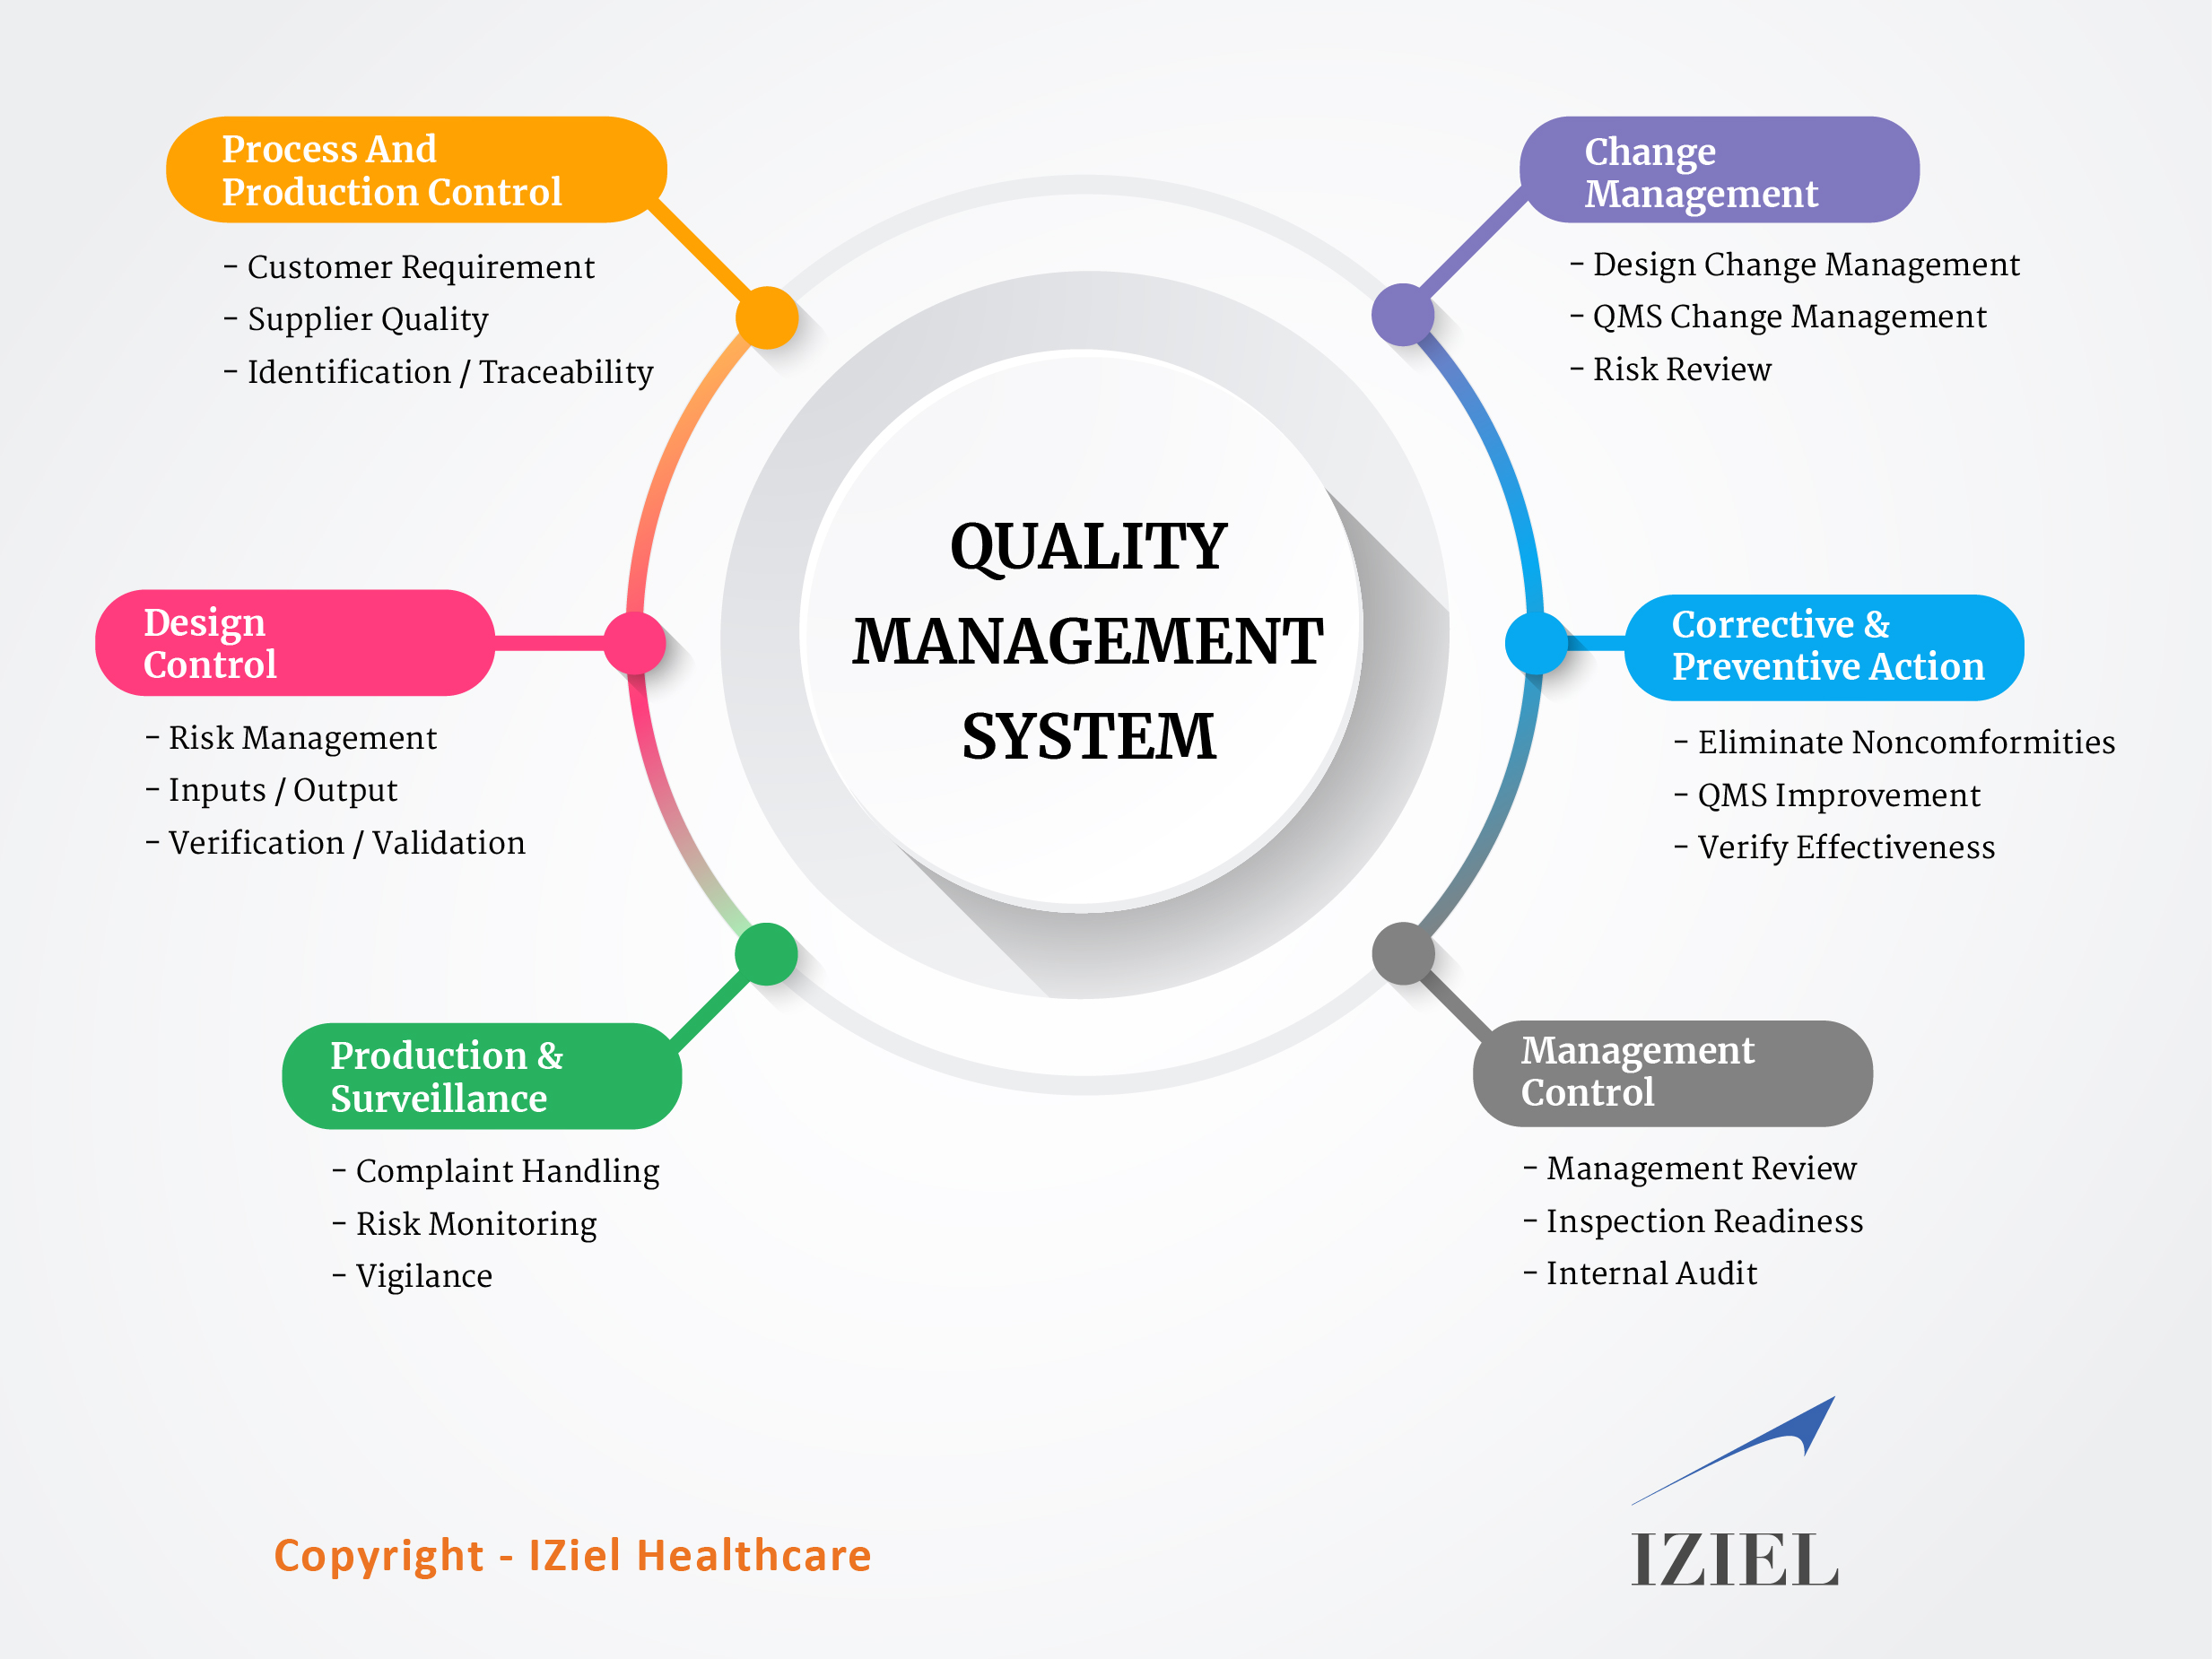 Quality Management System | 21 CFR Part 820 | ISO 13485 | IZielIZiel Healthcare